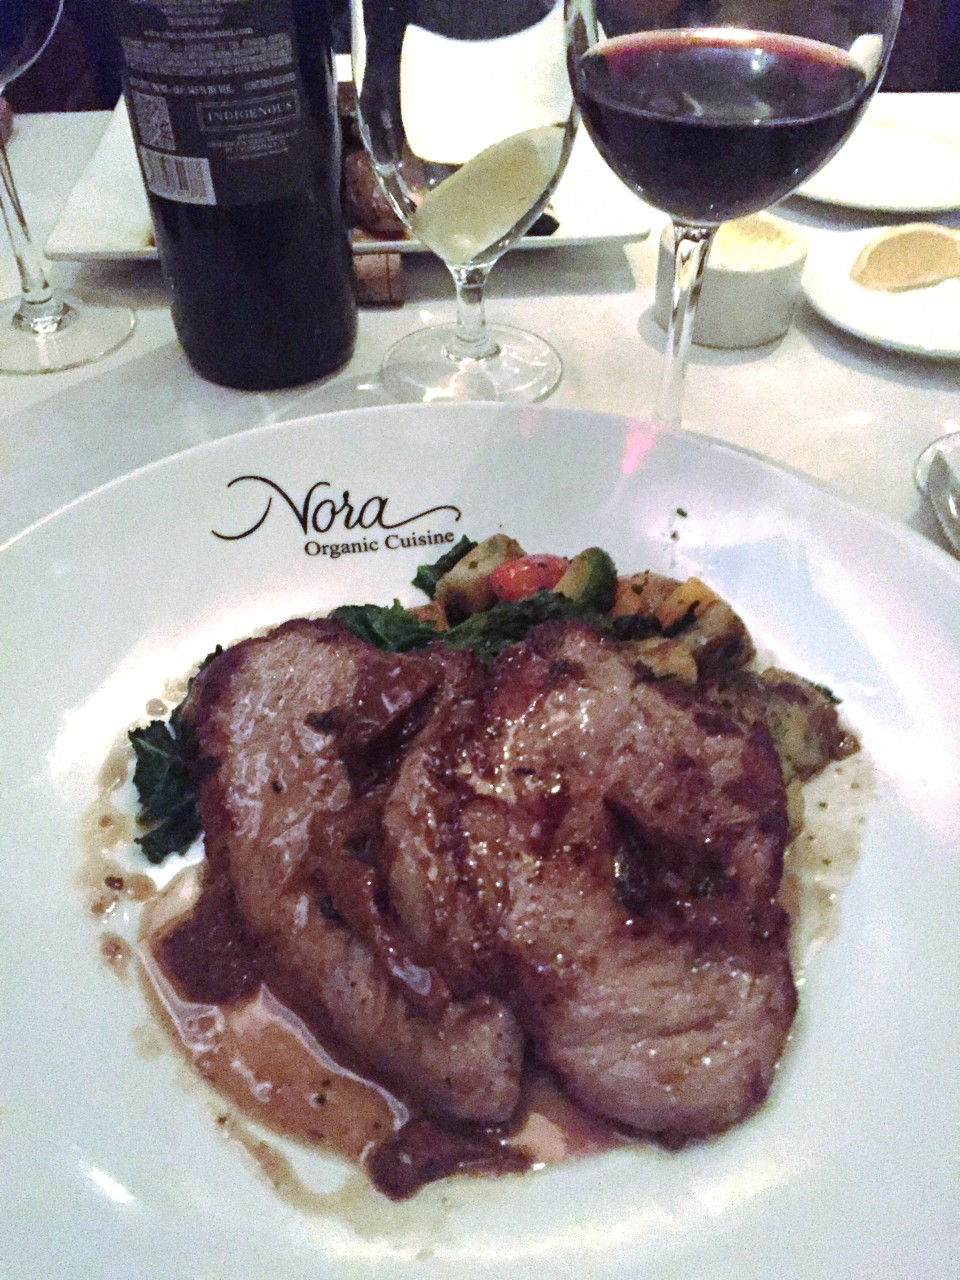 Sauteed Veal Escalopes with Housemade Gnocchi, Garlicky Kale, Brussel Sprouts, Peppers, Chanterelle Mushroom Sauce